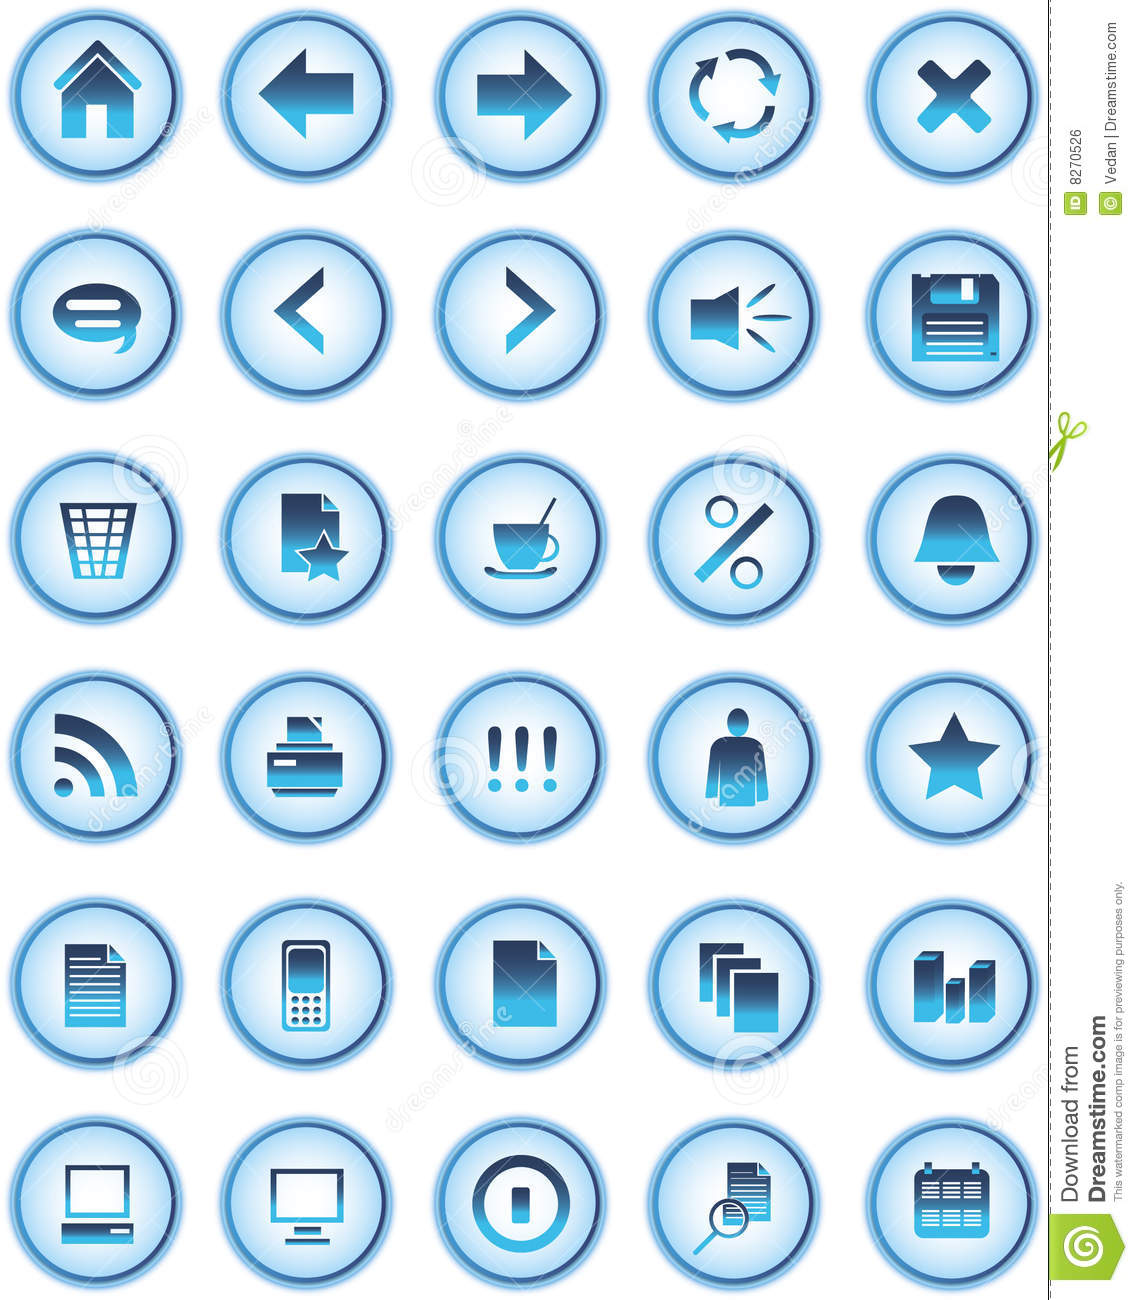 Blue Glass Web Icons, Buttons Royalty Free Stock Image - Image ...